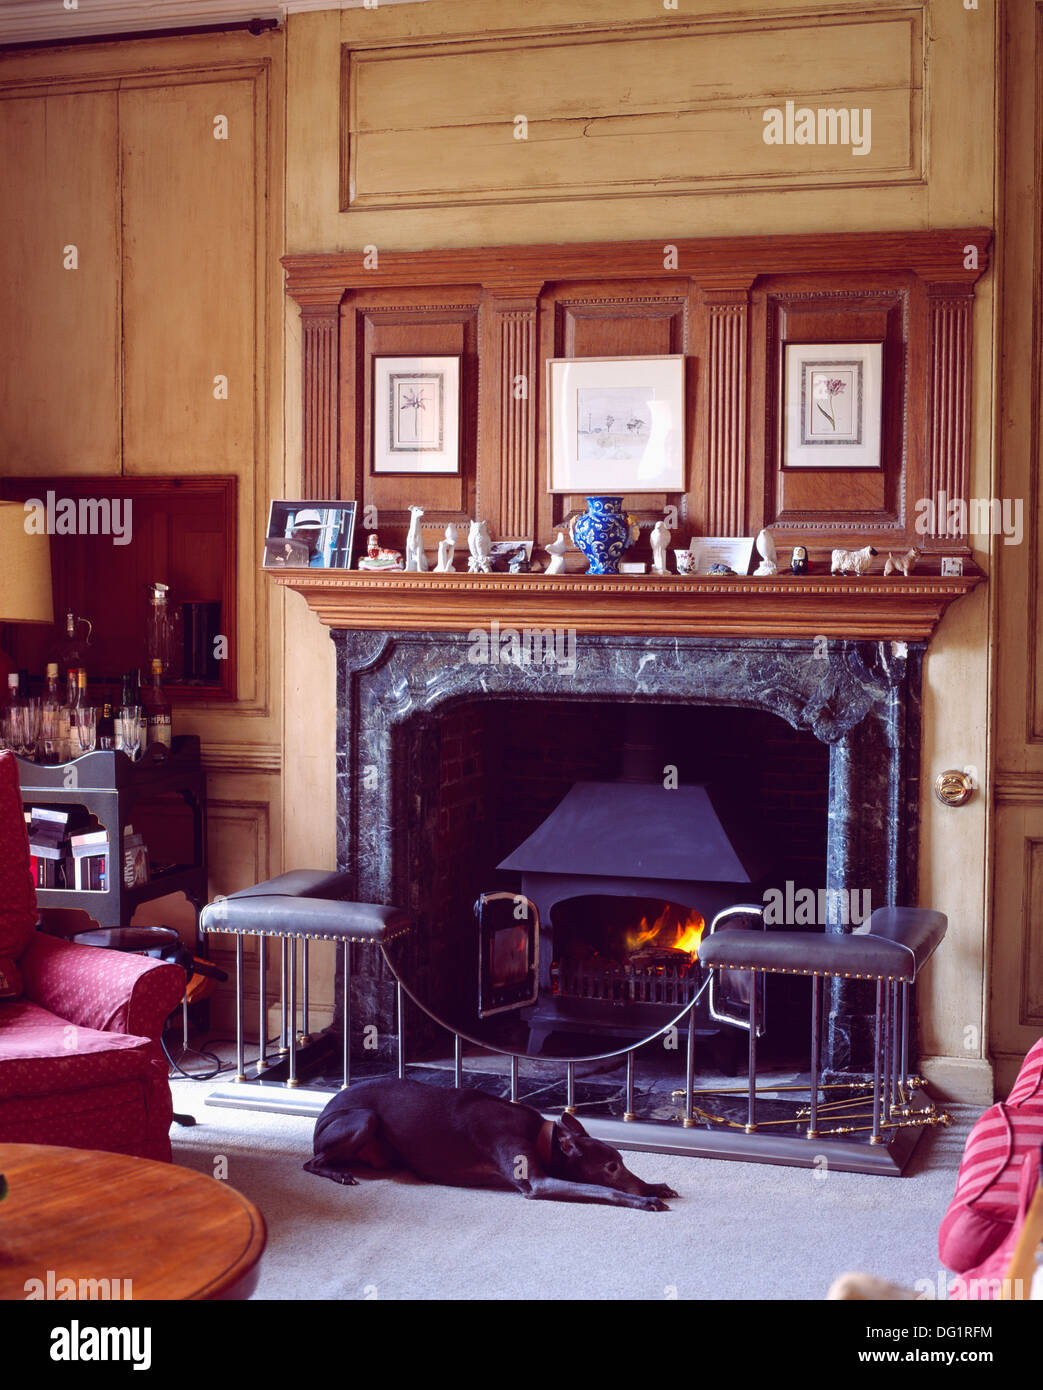 dog lying in front of wood burning stove in marble fireplace in